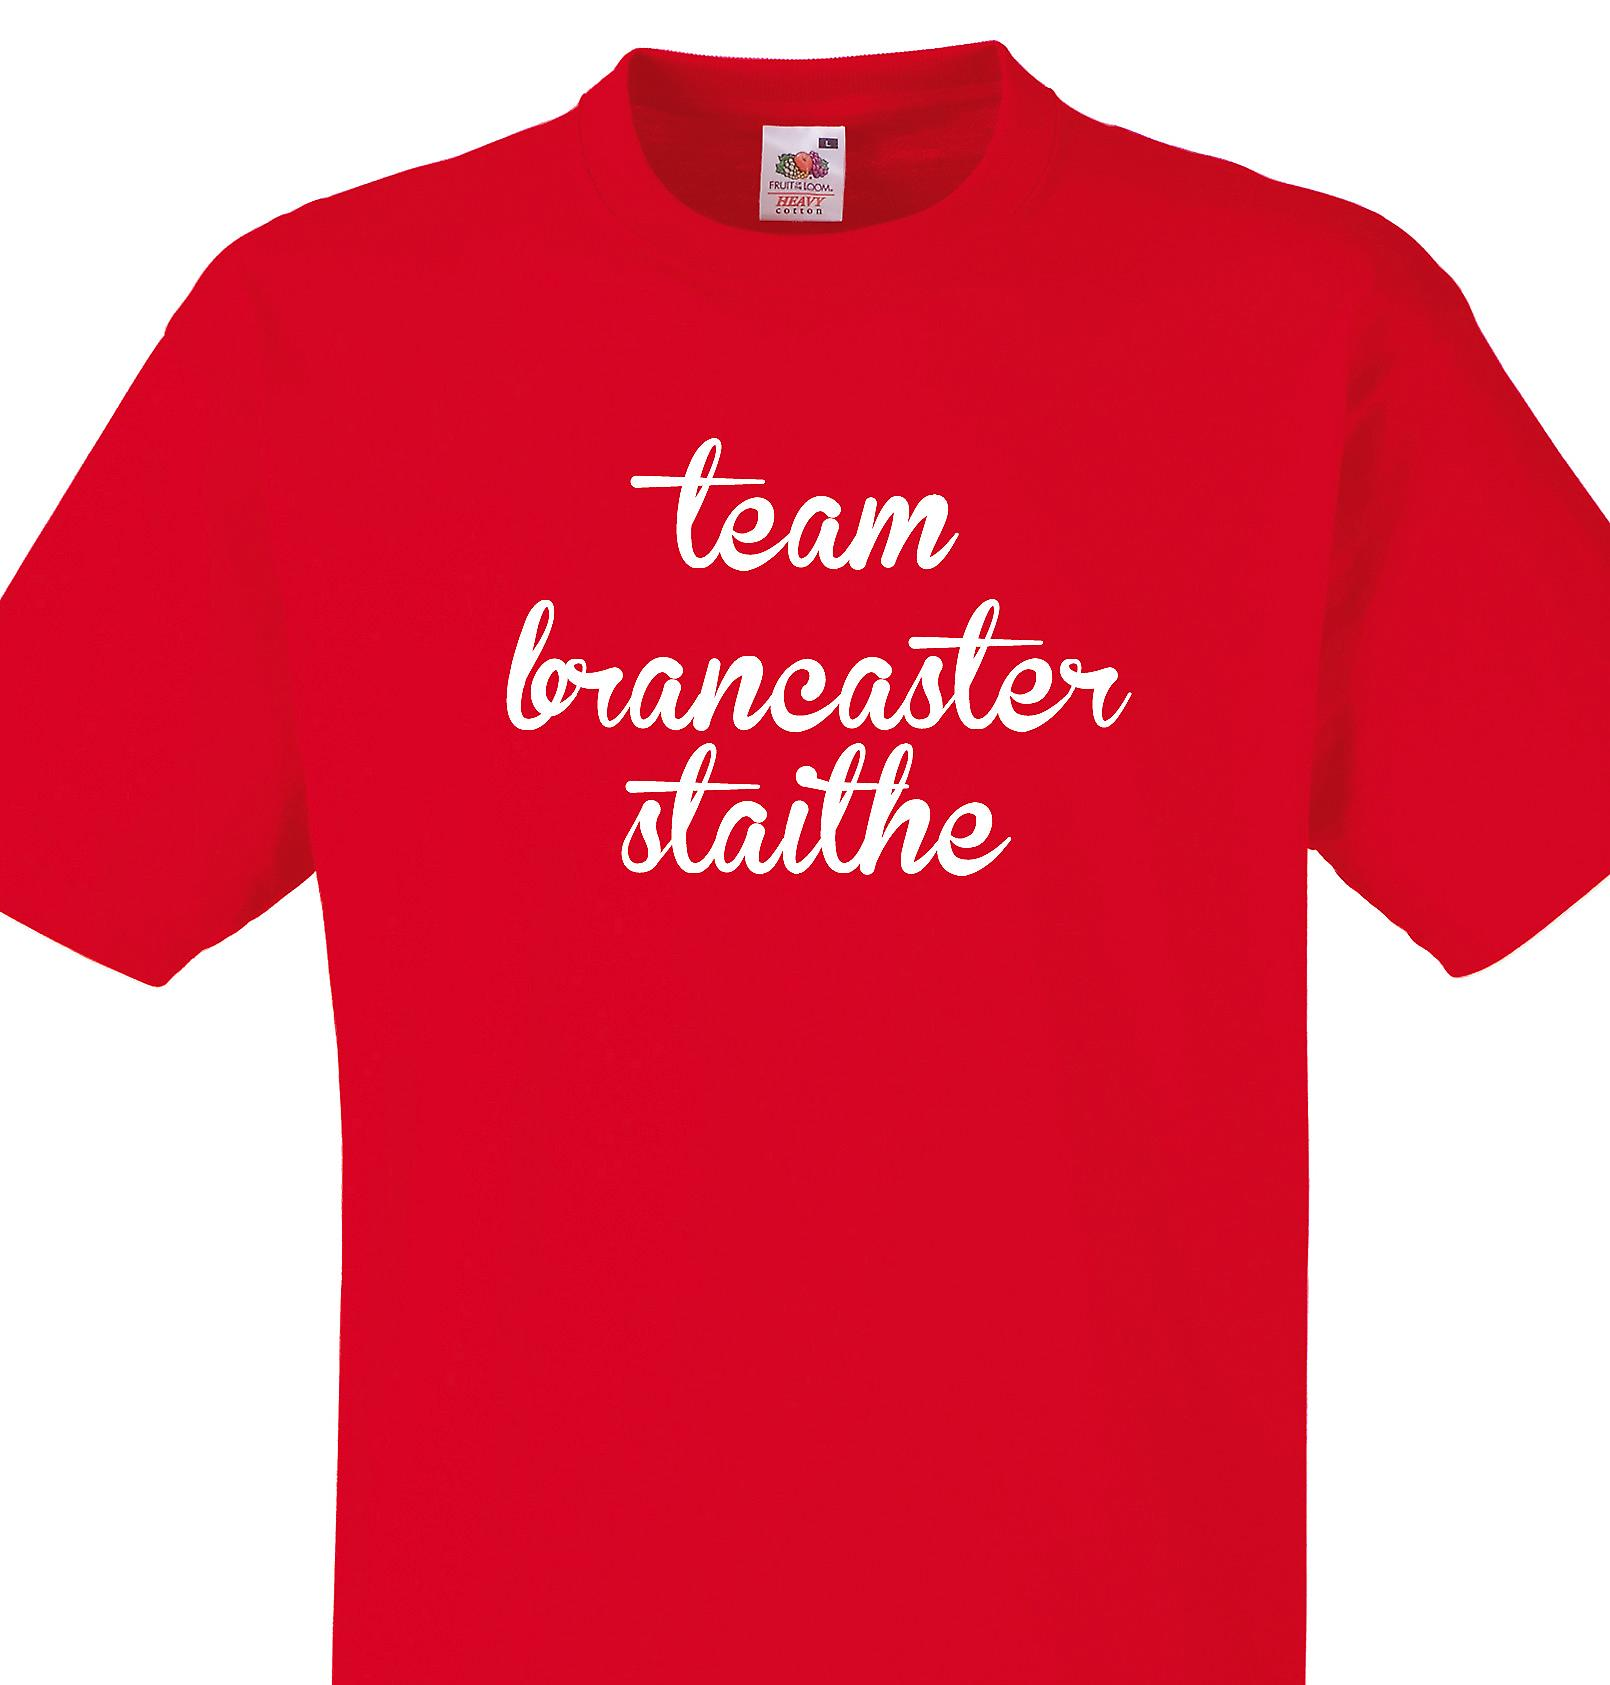 Team Brancaster staithe Red T shirt